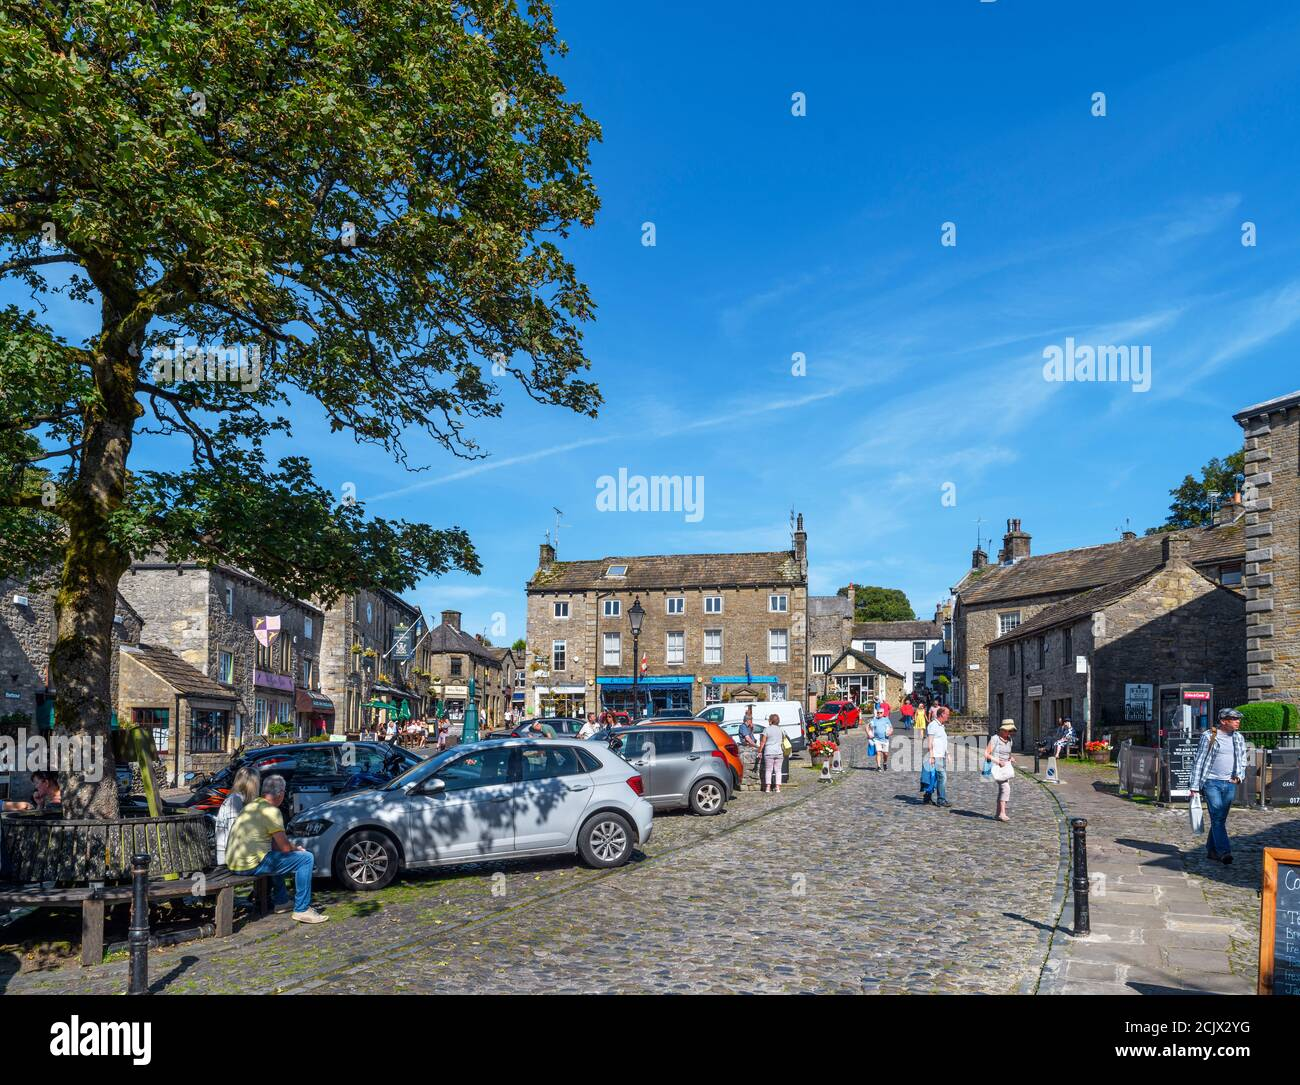 The Square in the traditional English village of Grassington, Yorkshire Dales National Park, North Yorkshire, England, UK. Stock Photo